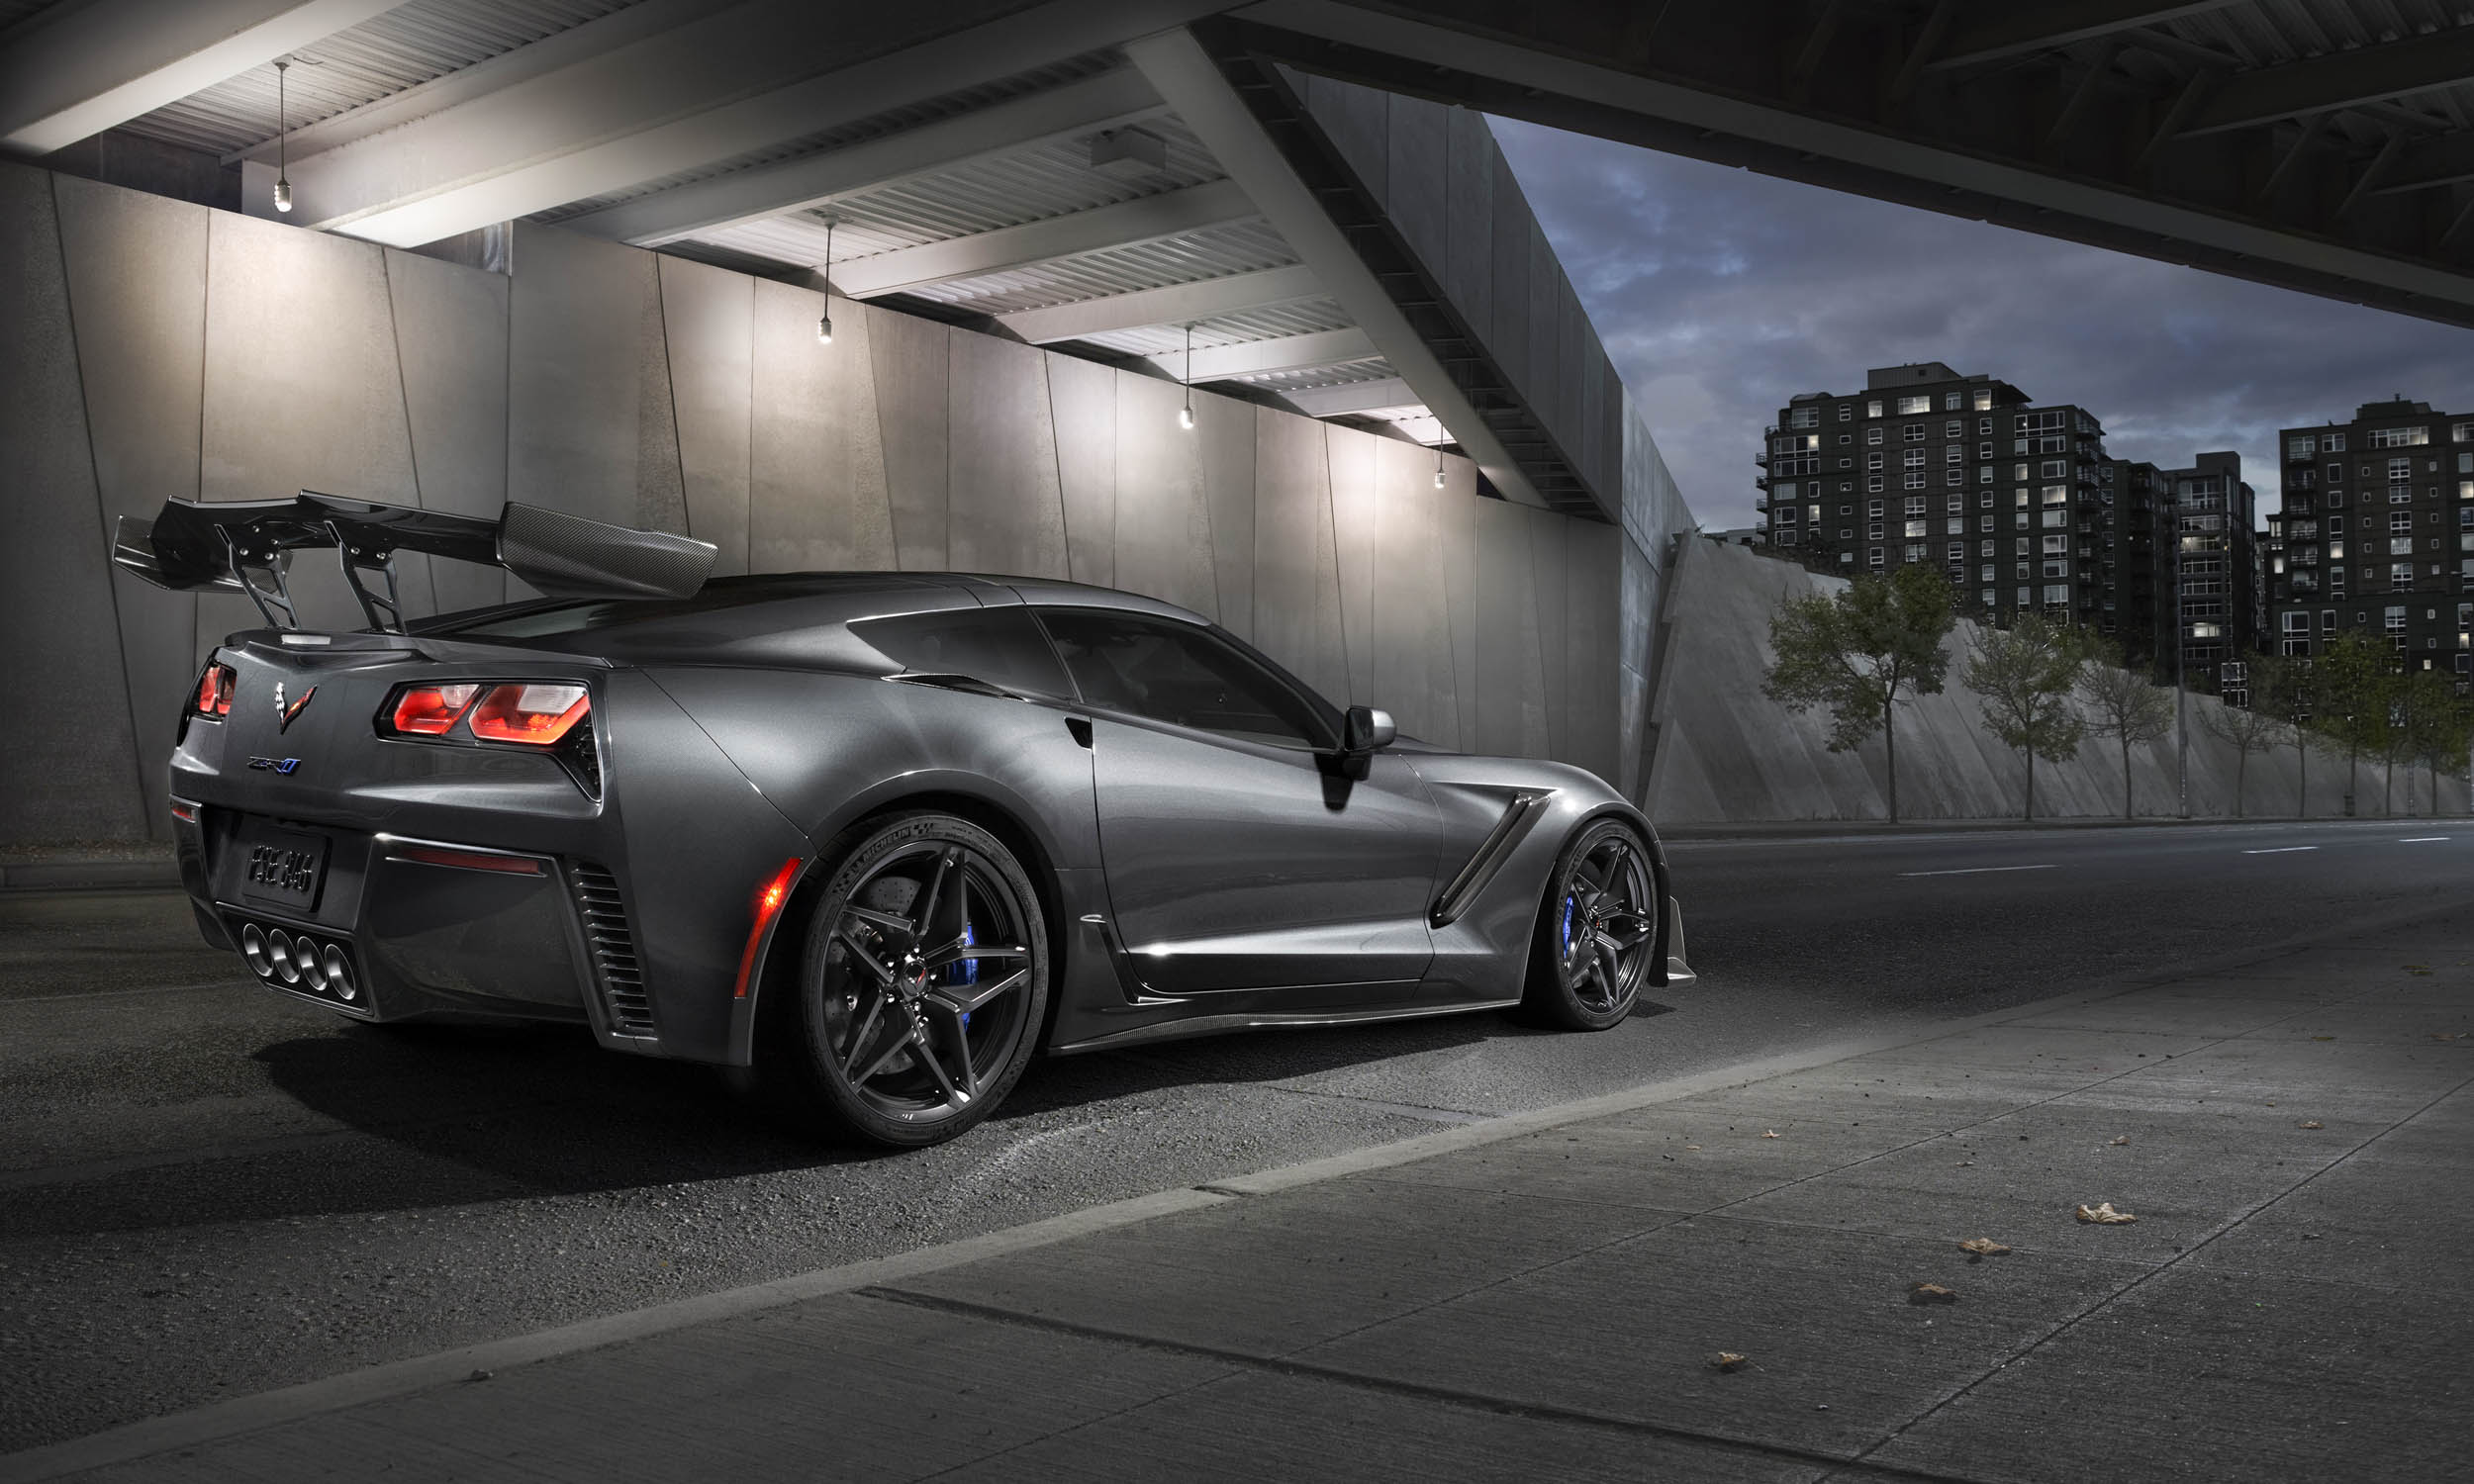 Lexus Stance Sf X besides Dsc Zpskgjjv Oa in addition Hqdefault as well Maxresdefault further Maxresdefault. on 2017 chevy corvette